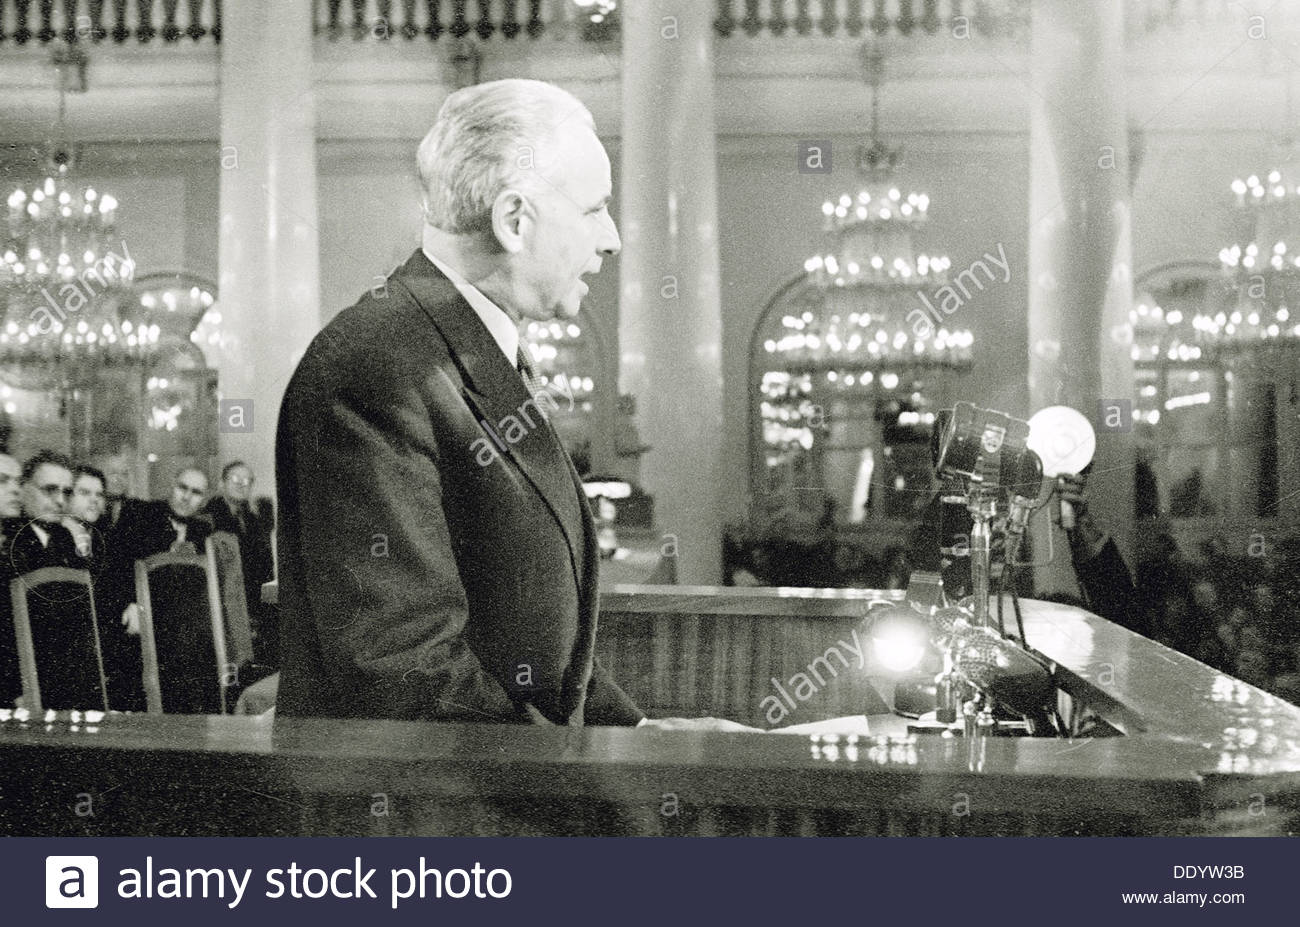 Louis Aragon, French poet and novelist, Moscow, USSR, 1954. Artist: Anon - Stock Image